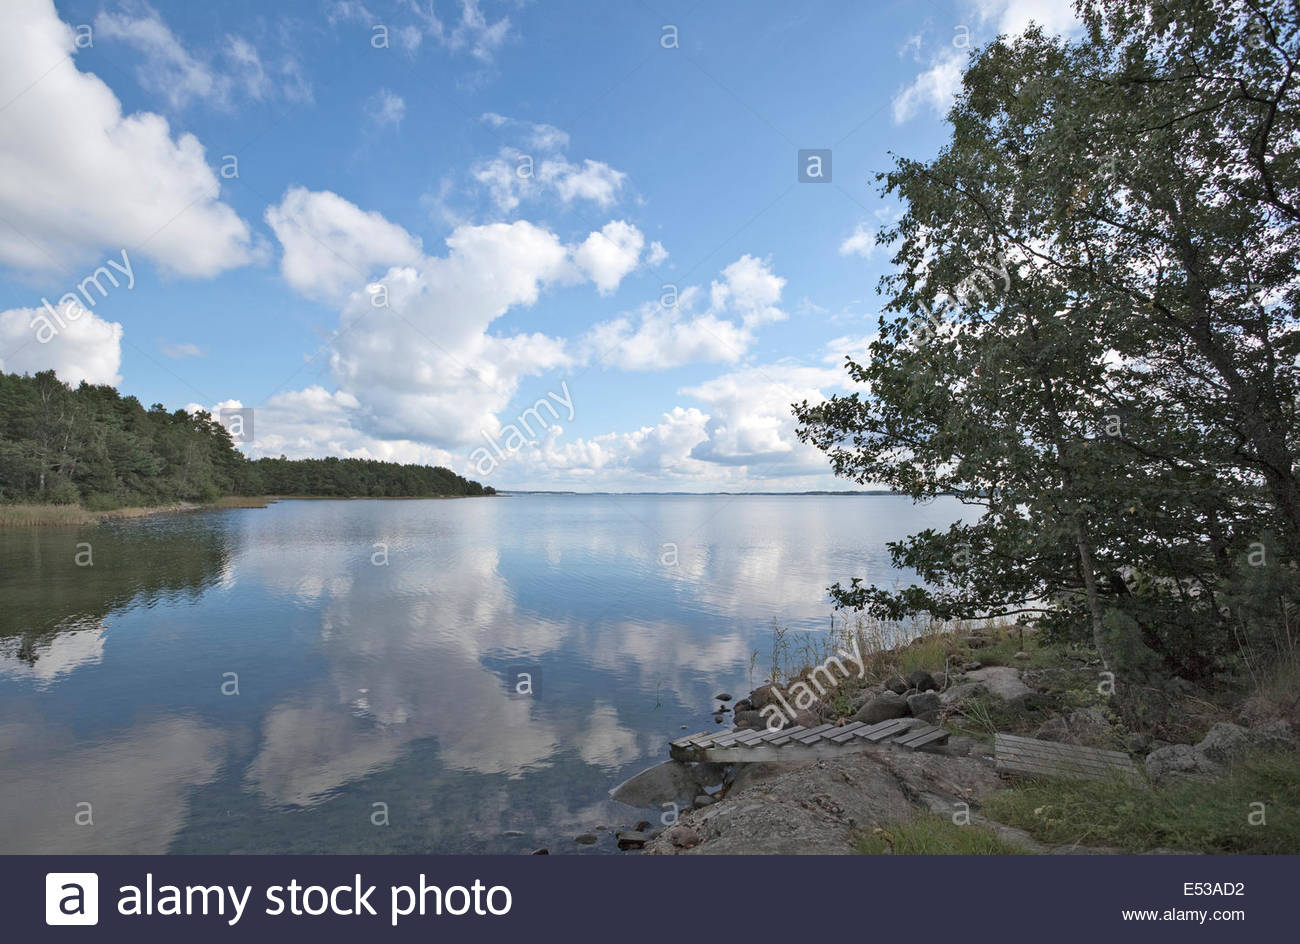 Beautiful summer day in the archipelago of Finland - Stock Image